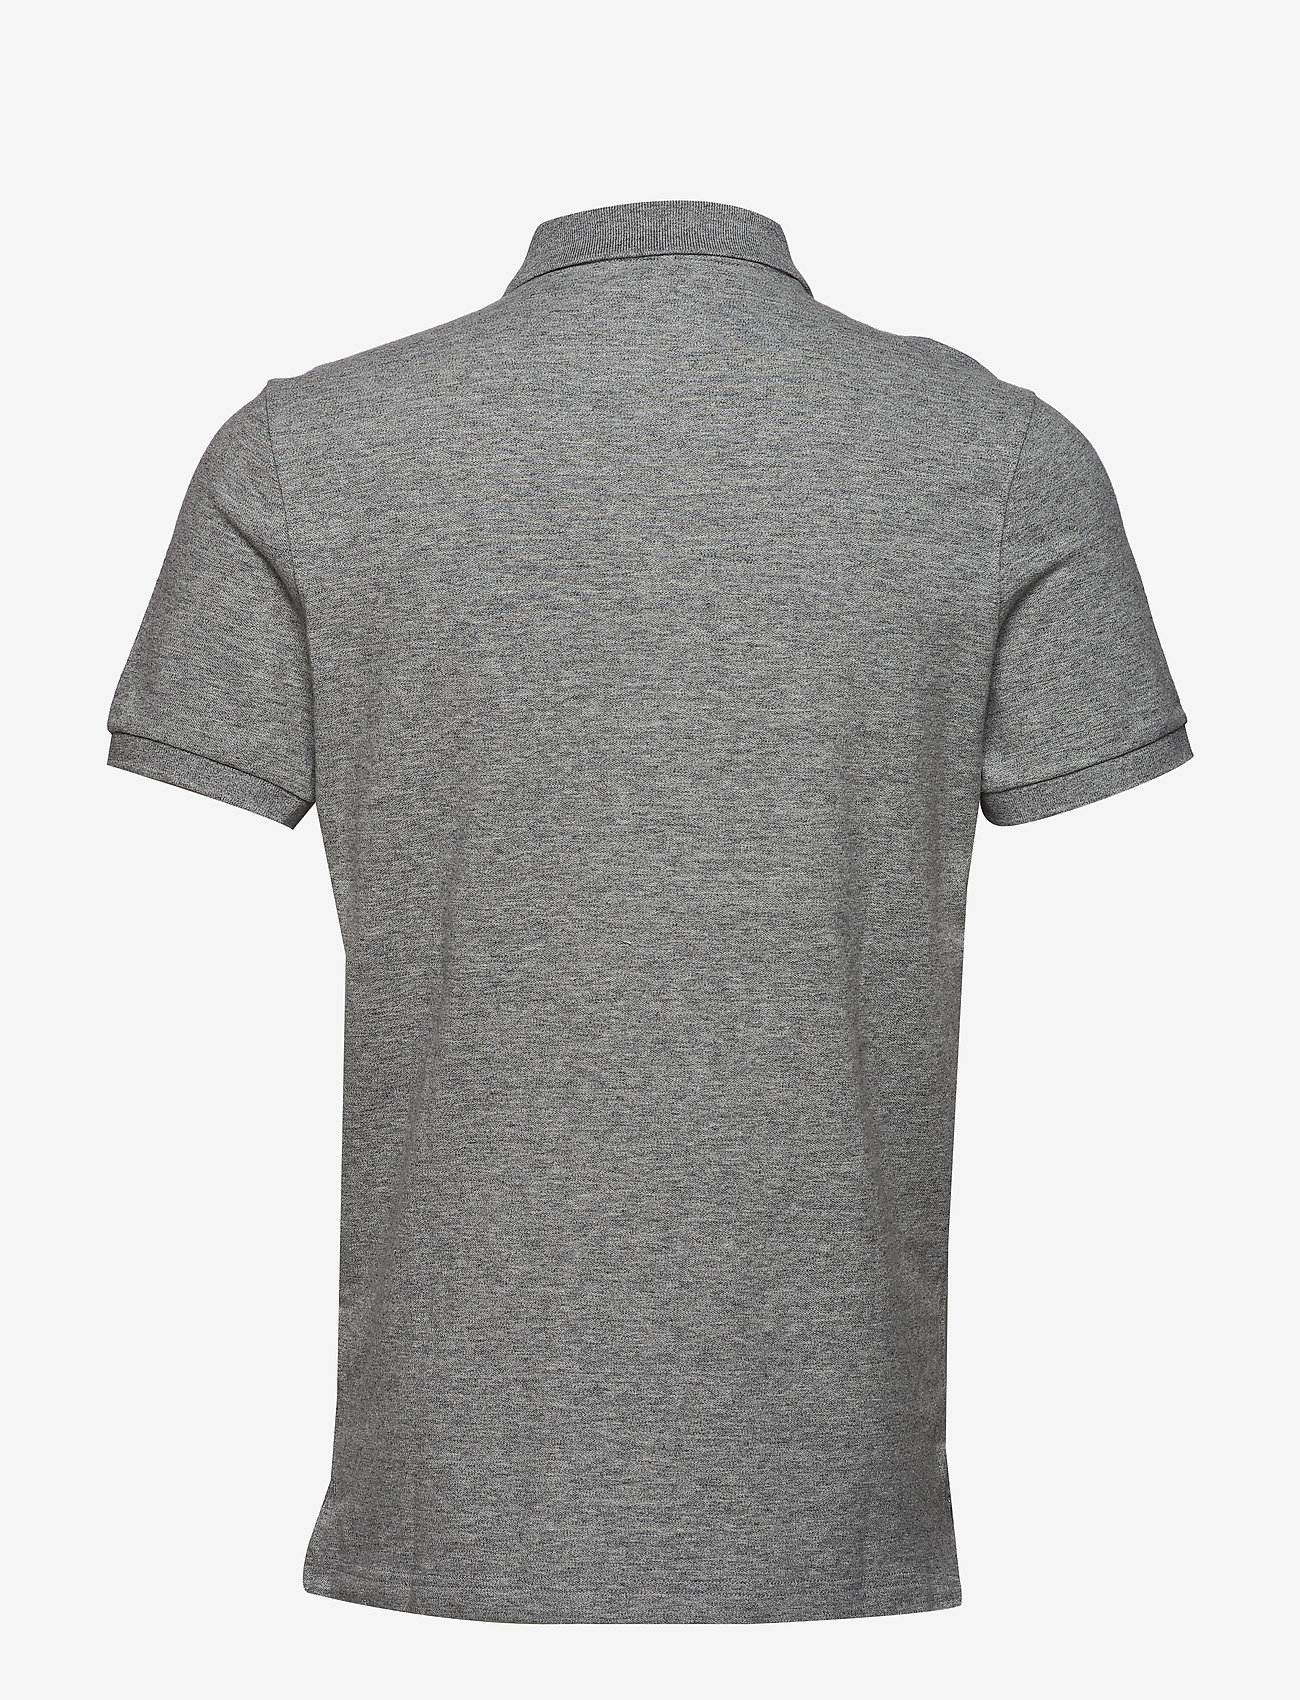 Abercrombie & Fitch Exploded Polo - Pikéer Med Grey Flat